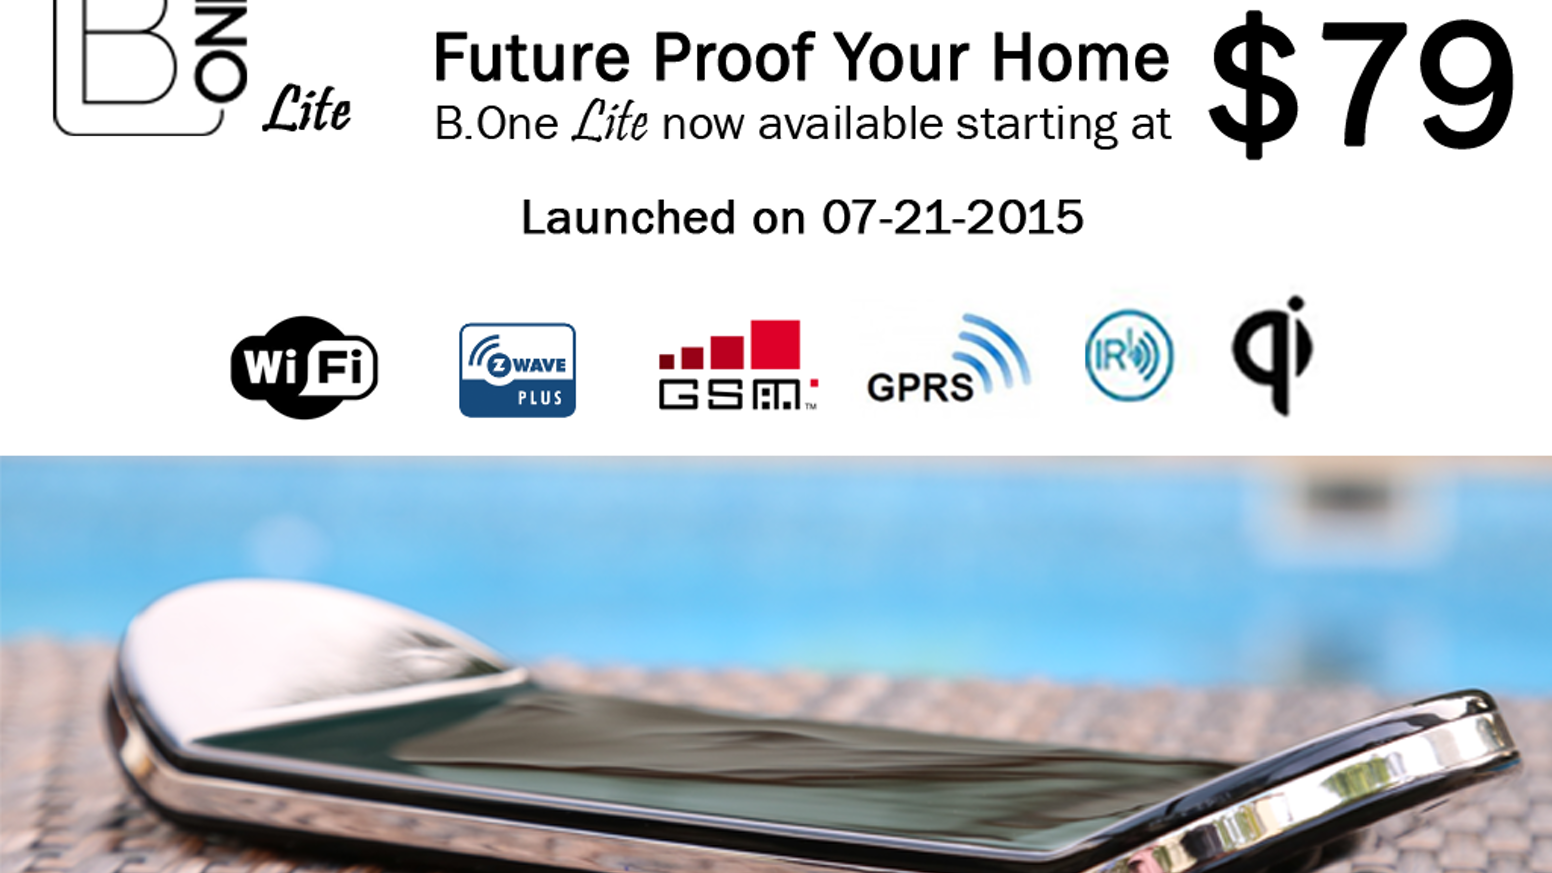 Future Proof your home with B.One Smart HUB